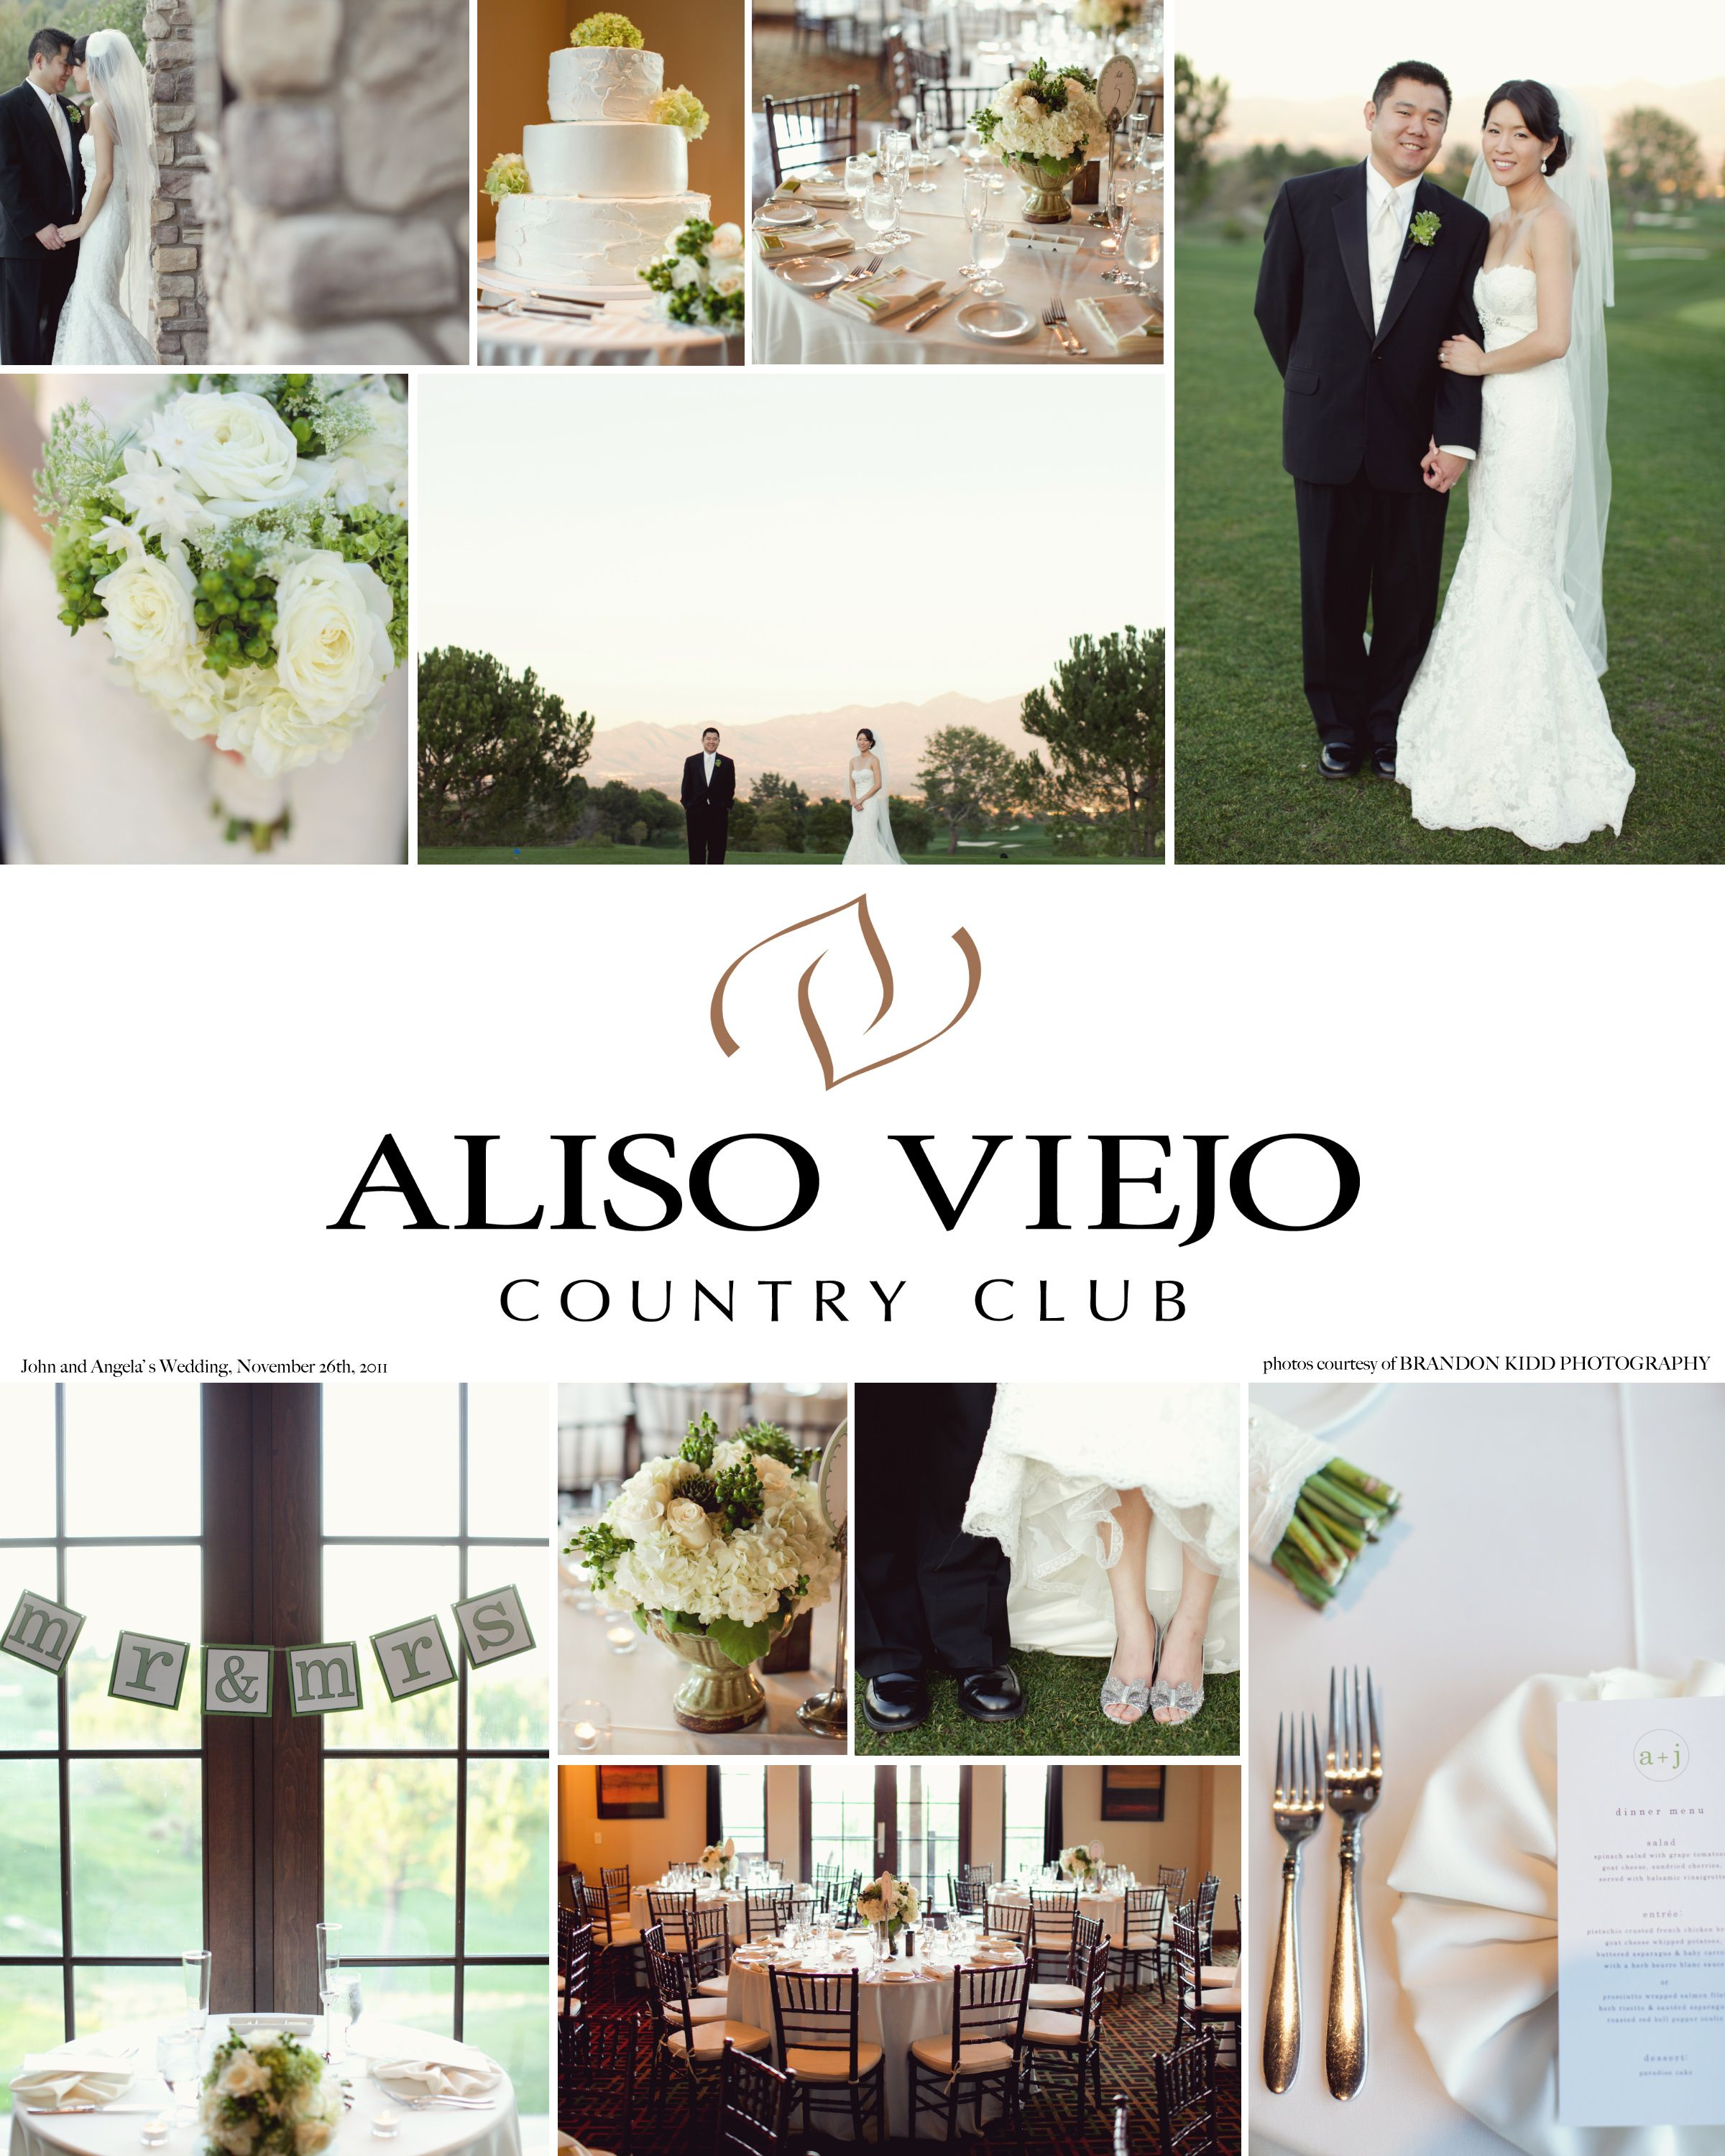 Picture Collage By Brandon Kidd Aliso Viejo Country Club